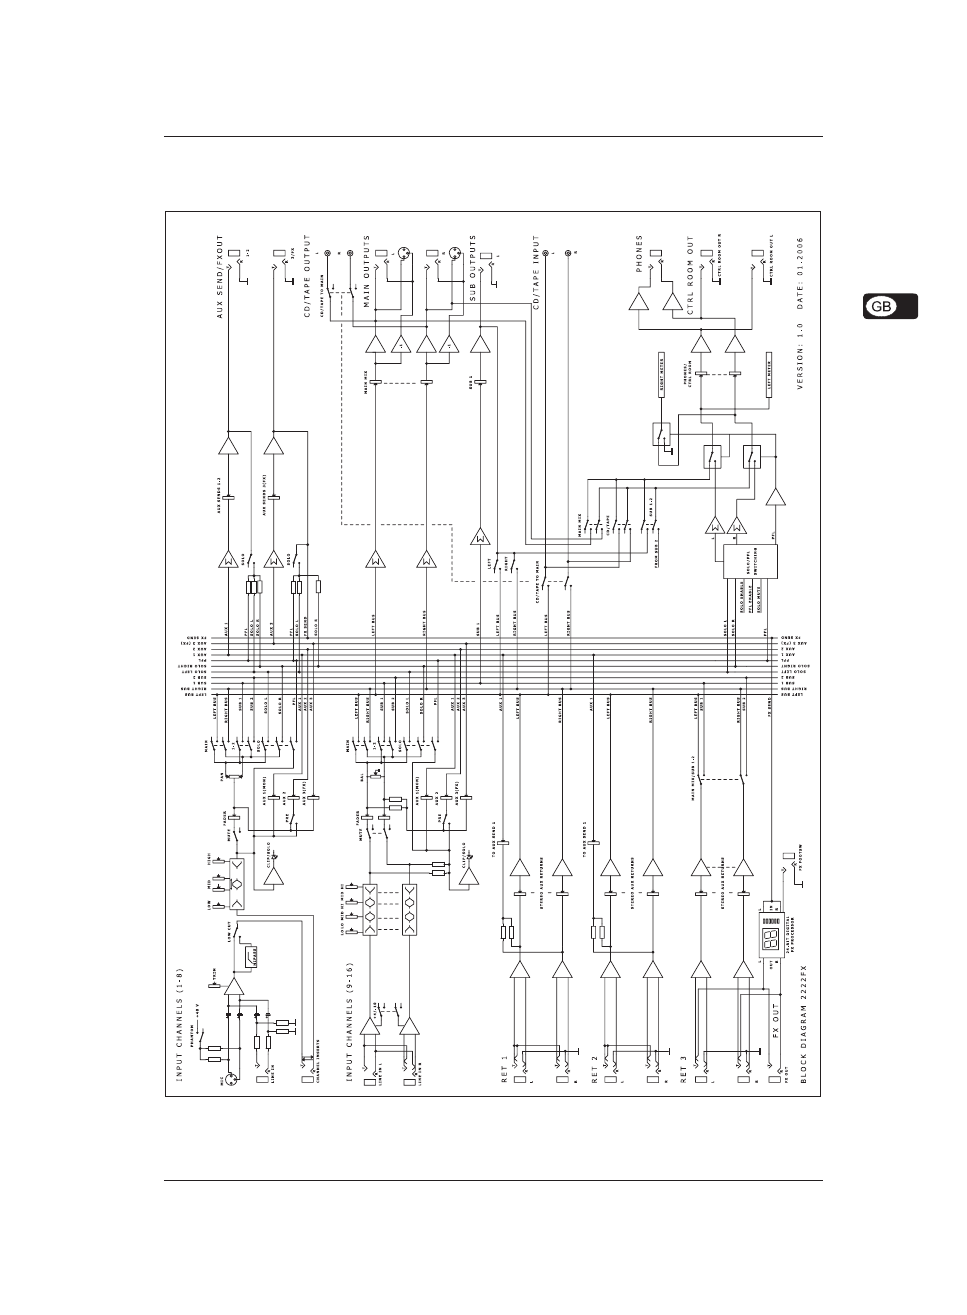 Behringer Mixer Diagram Electrical Wiring Diagrams Euro Rack Xenyx 2222fx Users Manual Page 3 Free Pdf Download 5 Eurorack